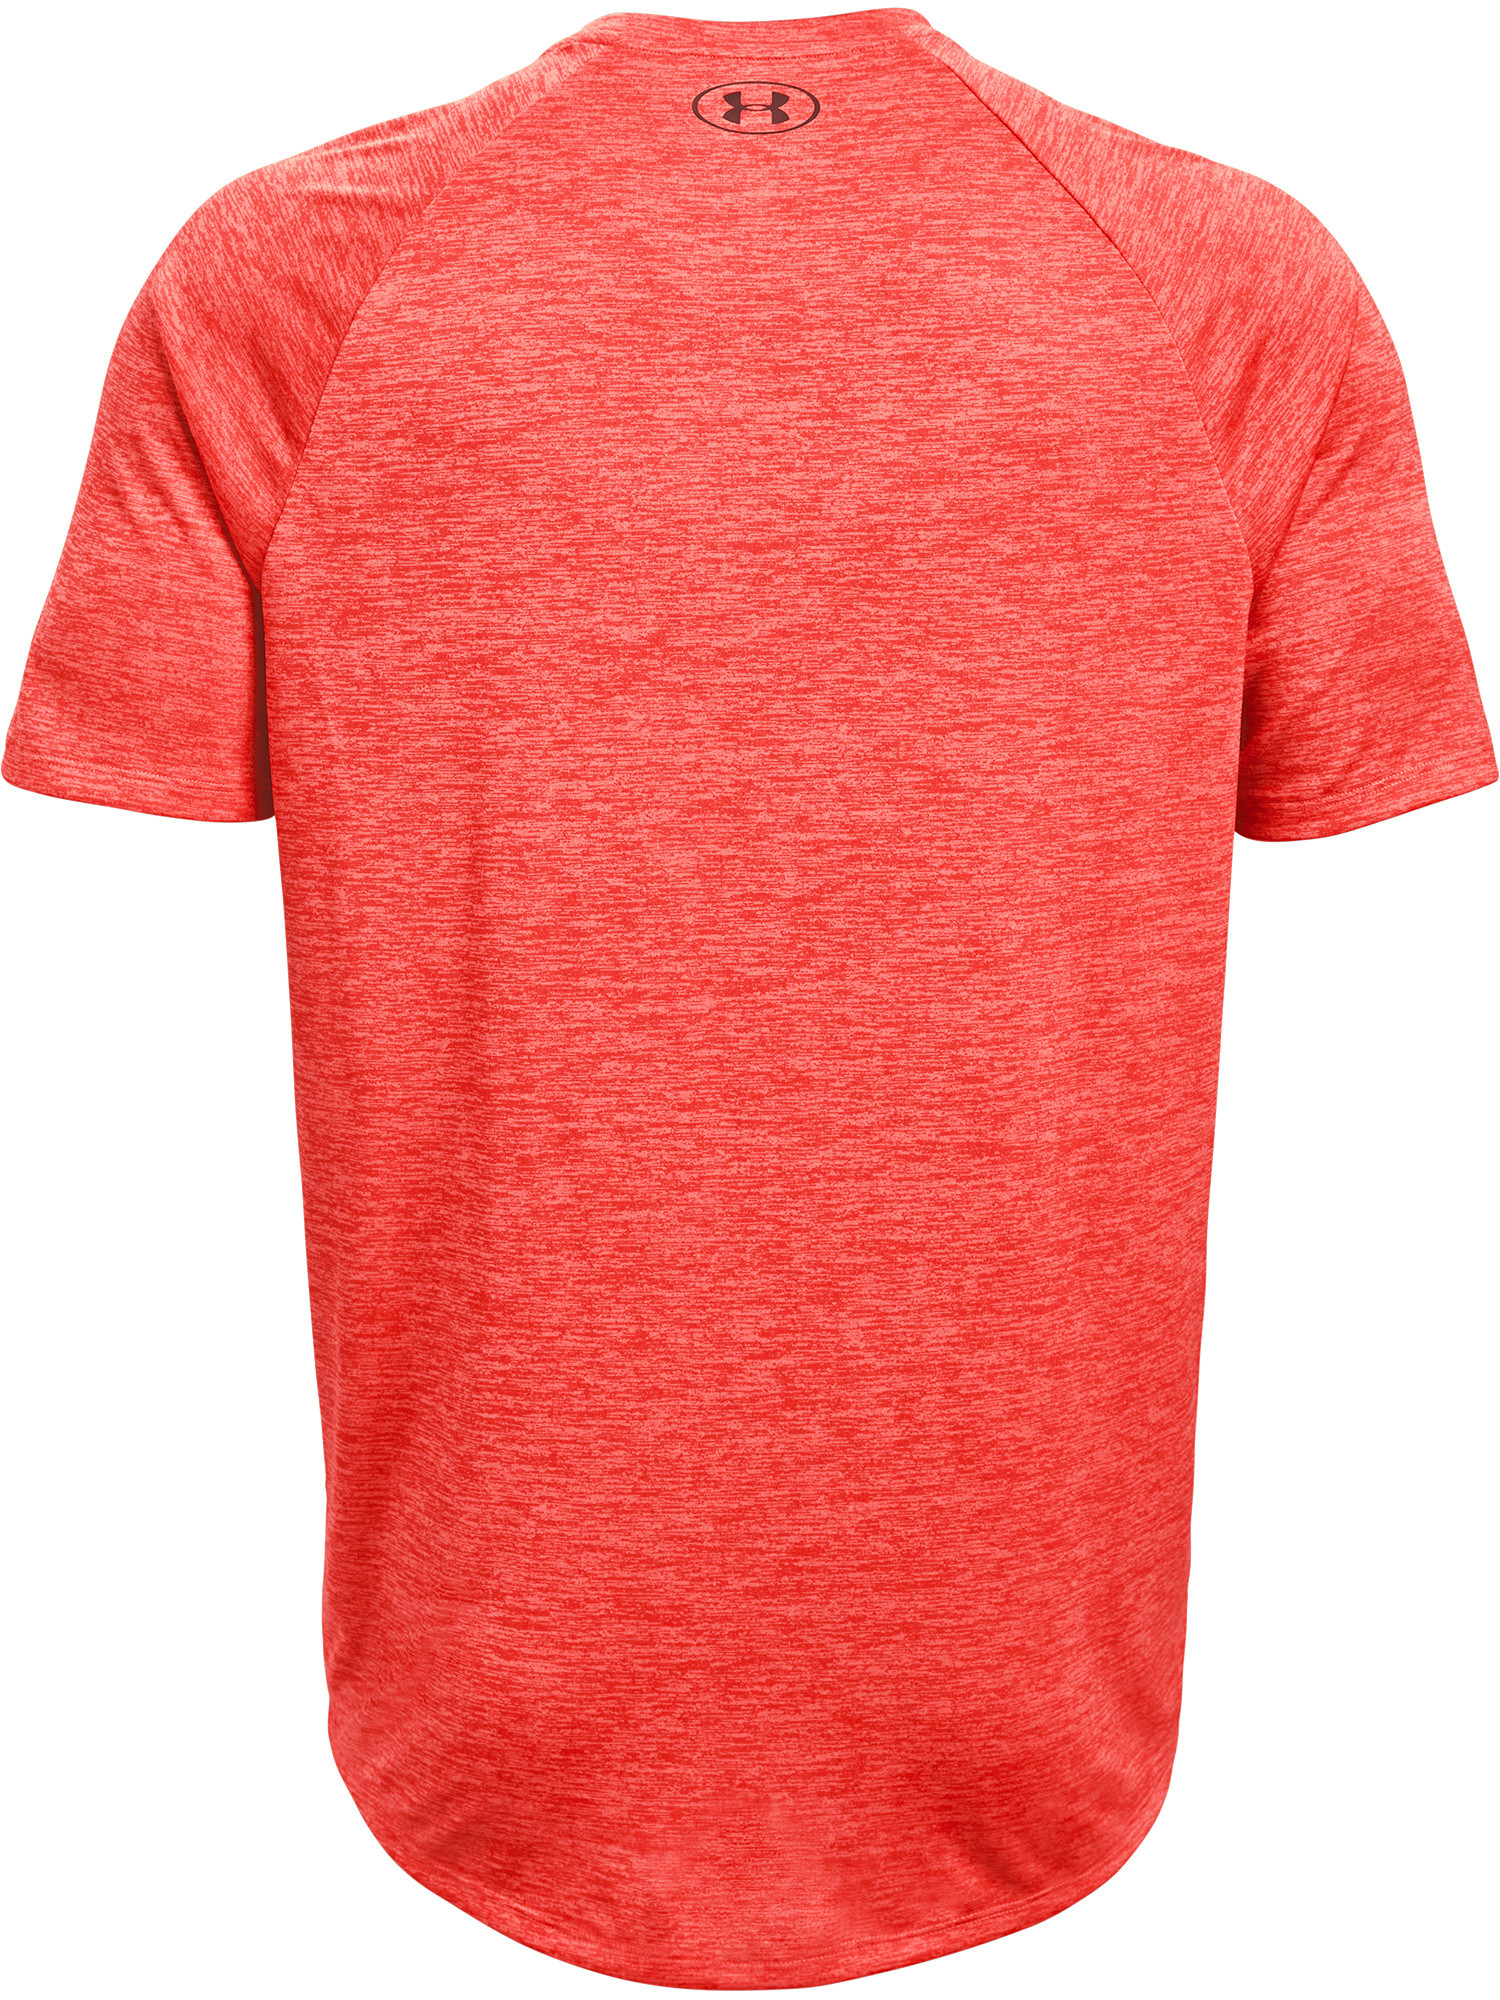 T-shirt a manica corta Tech, Rosso, large image number 1